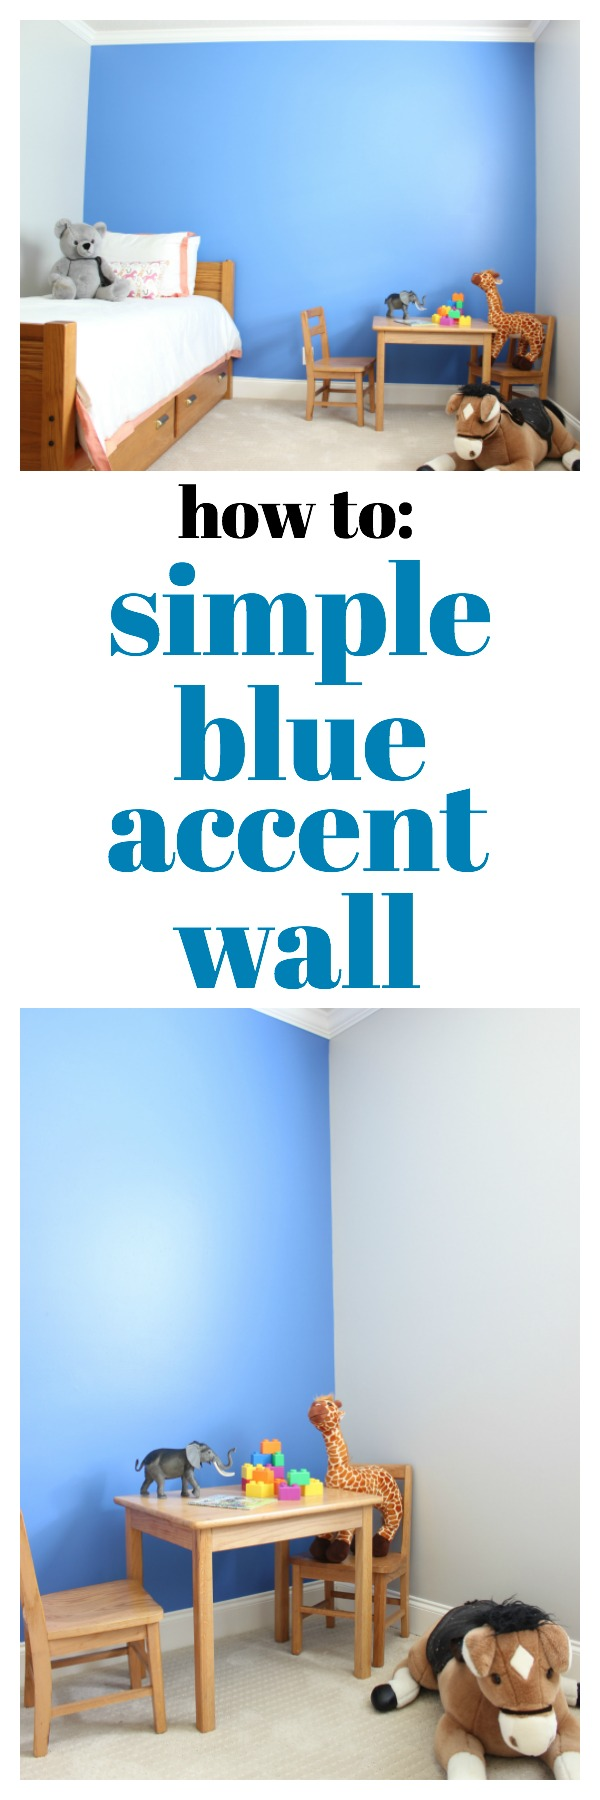 Tutorial for a Simple Blue Accent Wall using Behr's Boat House - great idea for adding a little color to a room! Perfect for kid's rooms!